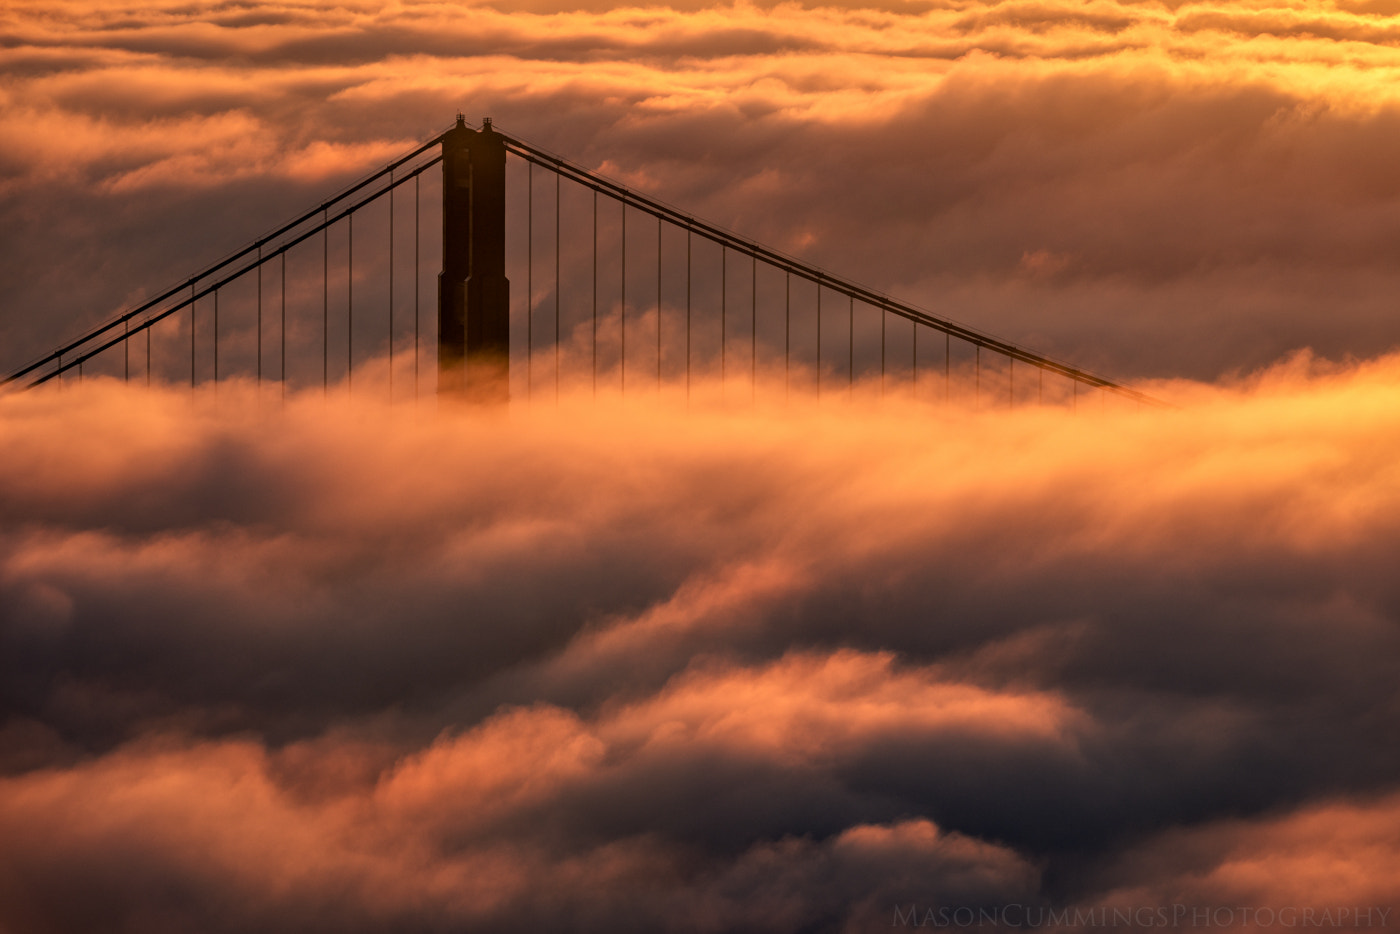 Photograph Knocking on the Golden Door by Mason Cummings on 500px